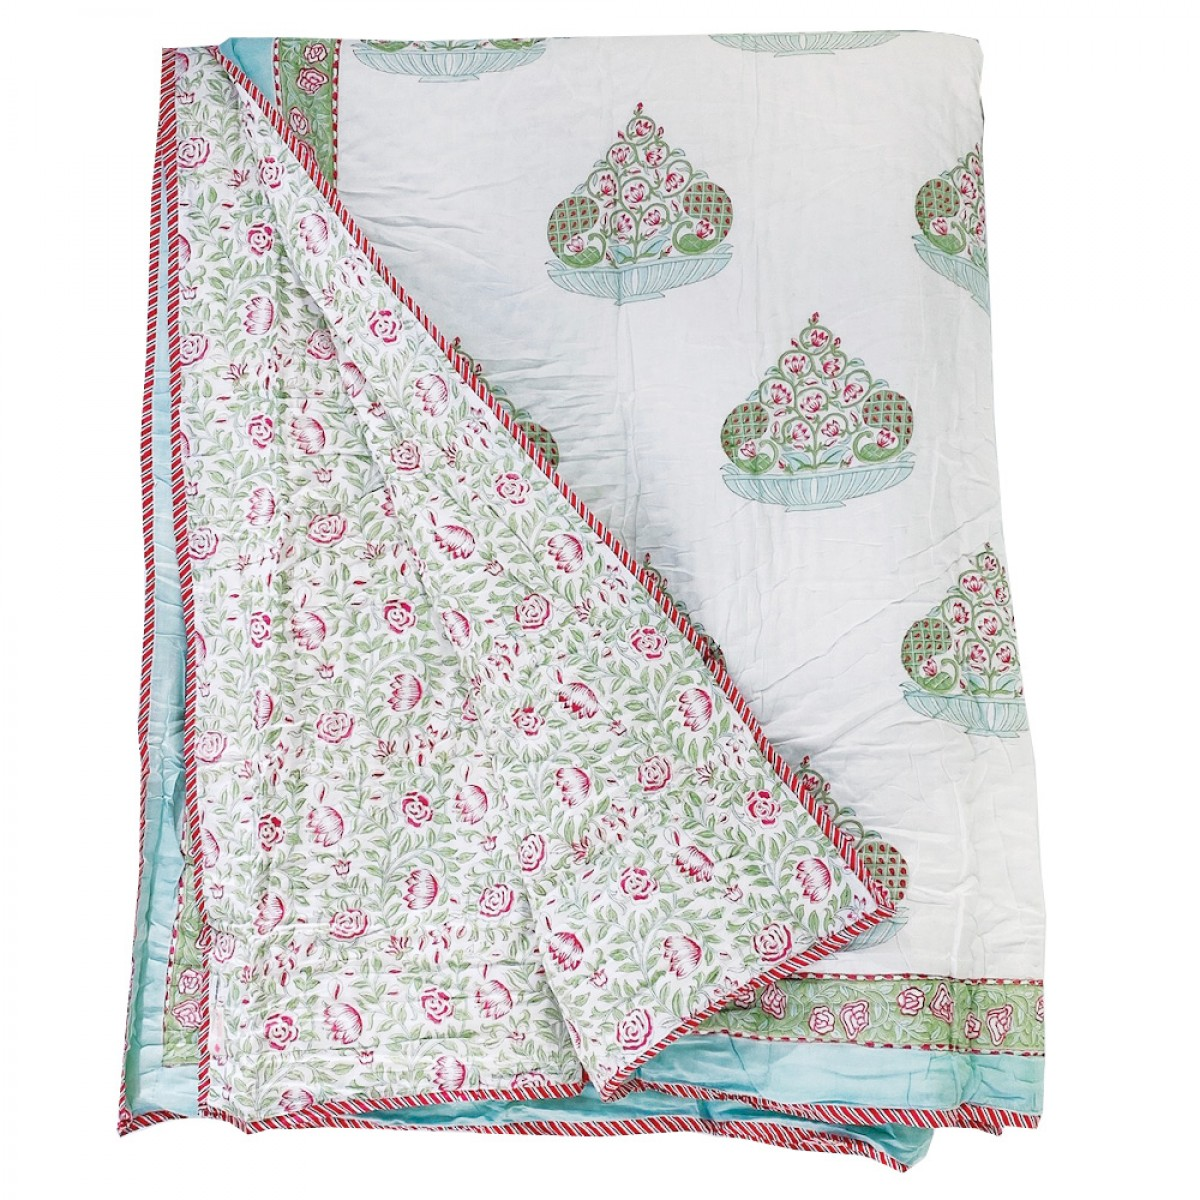 100% Cotton Block Printed Quilts - Green Blossom